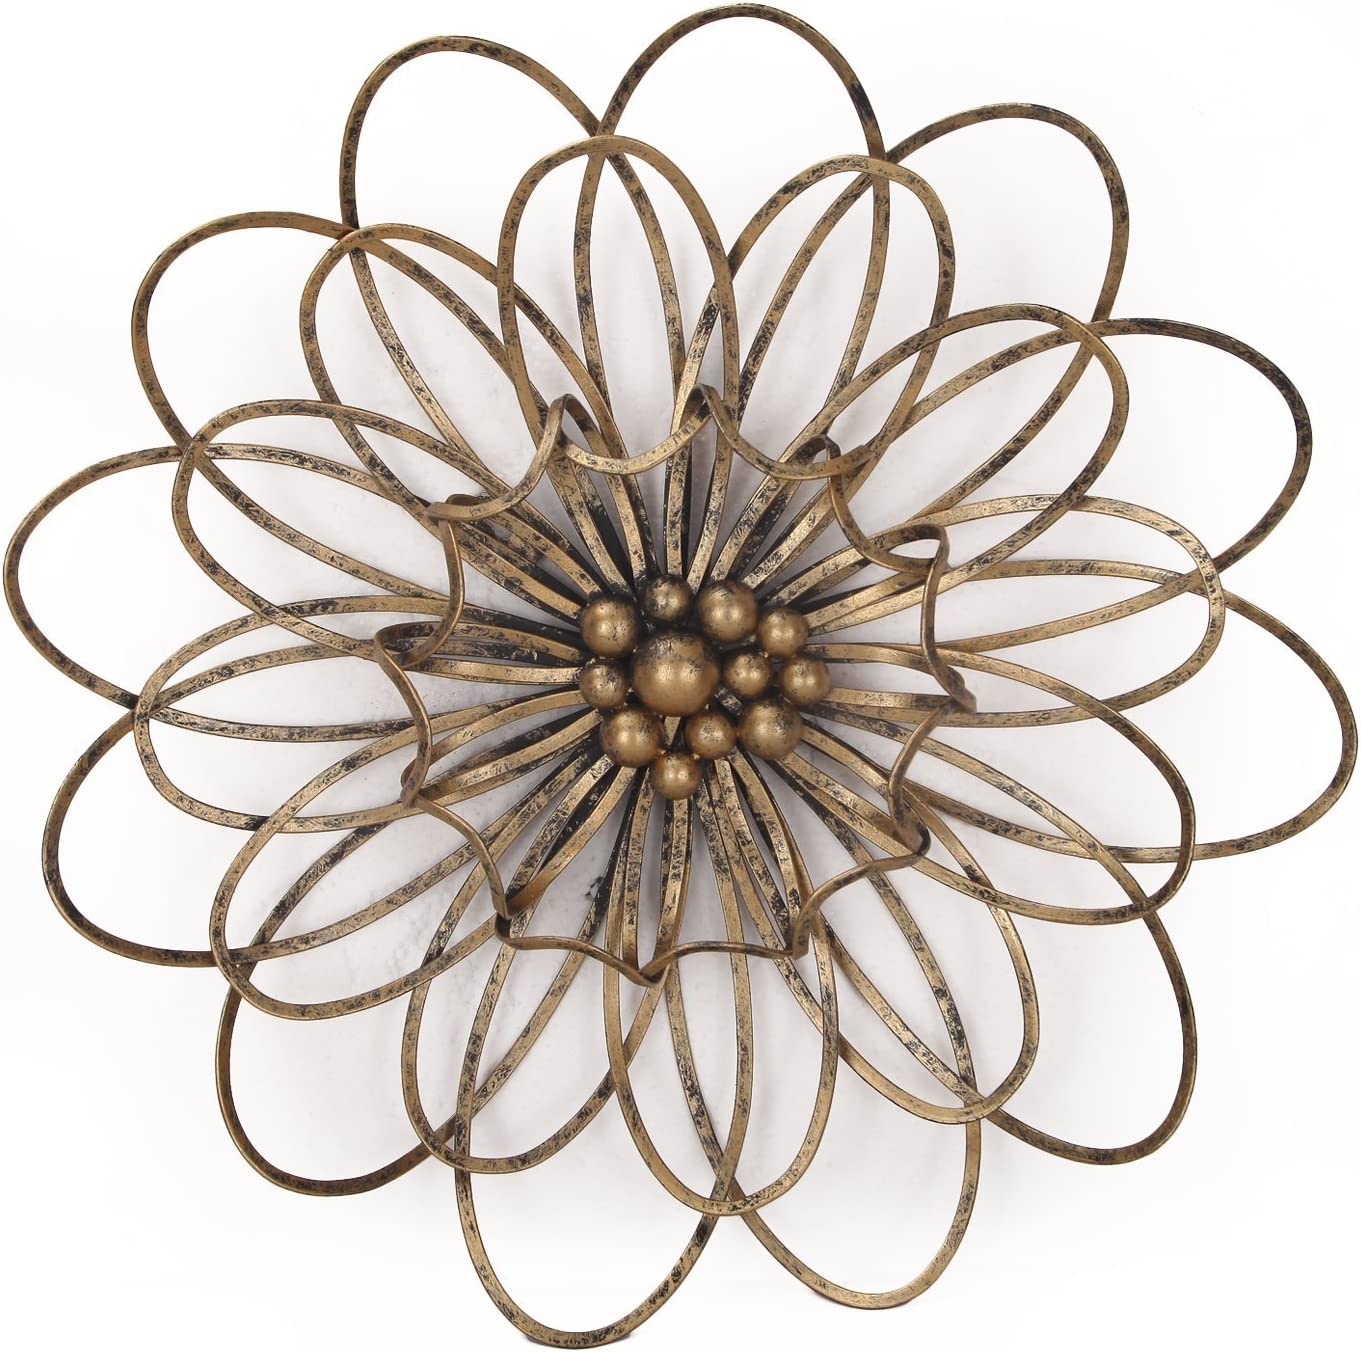 Adeco DN0018 Flower Urban Design Metal Wall Decor for Nature Home Art Decoration & Kitchen Gifts, Light Bronze